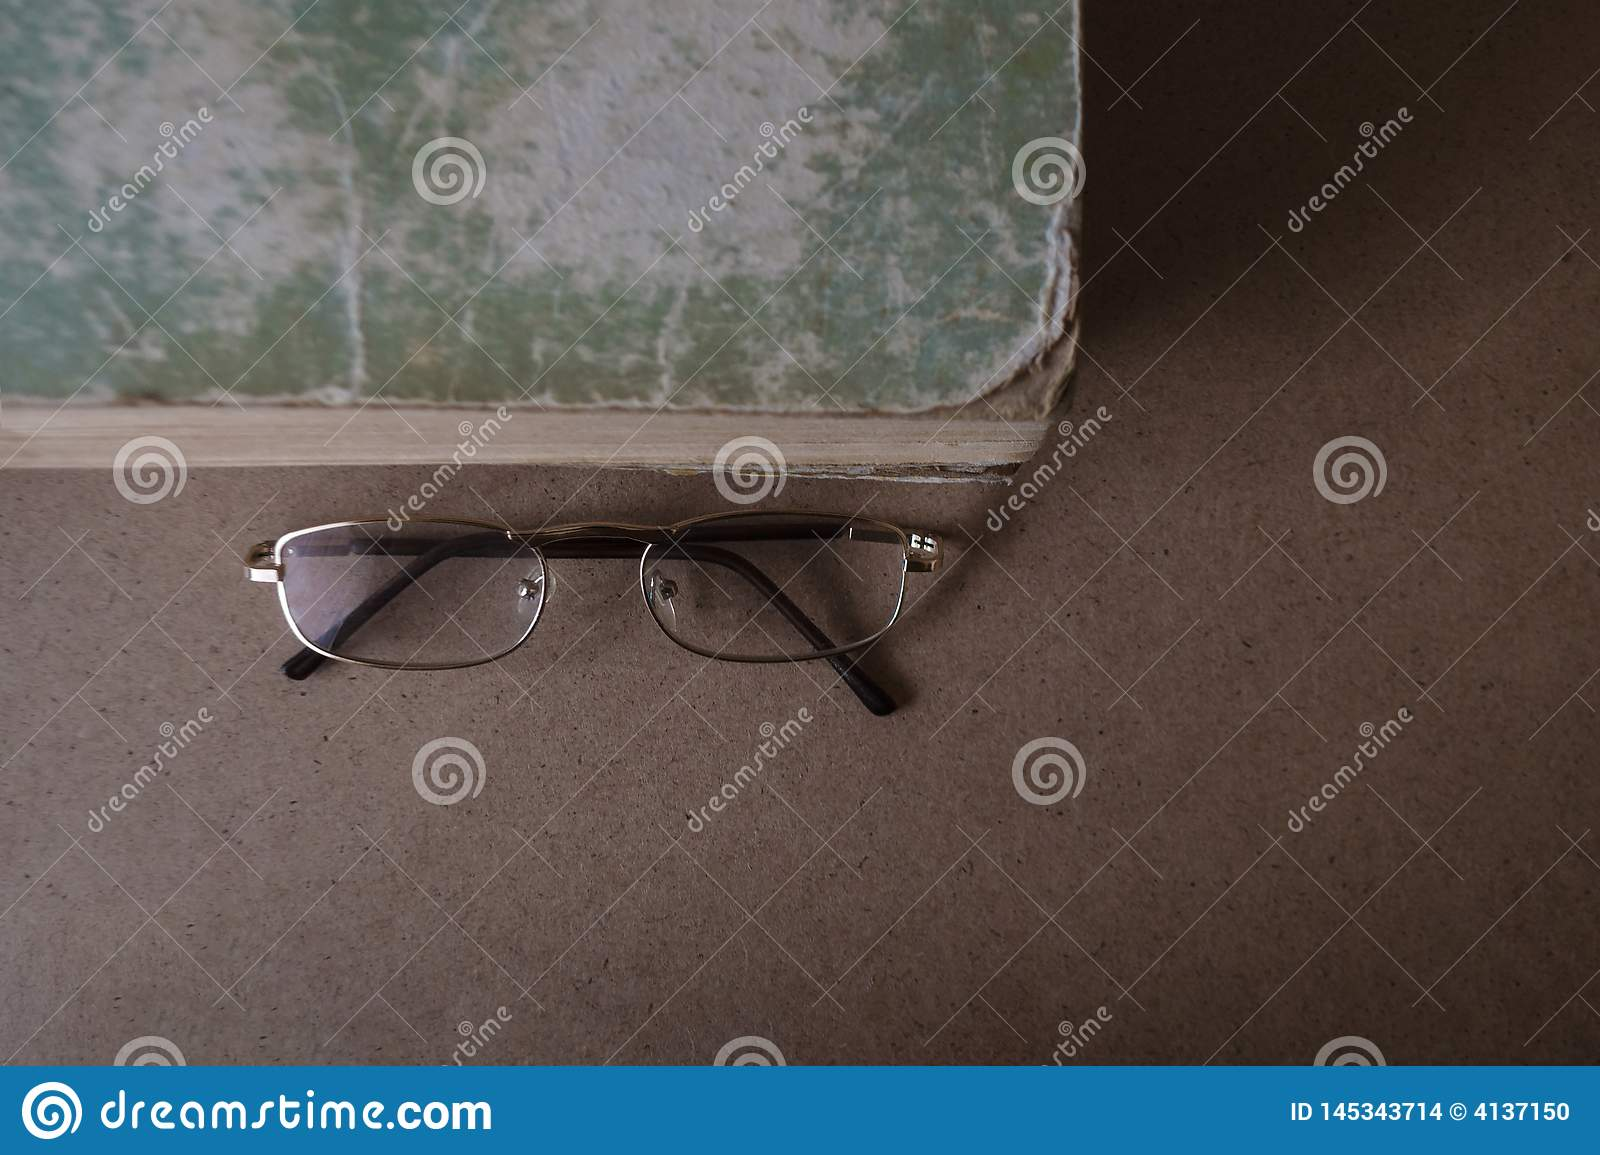 Glasses near the old book with torn edges and shabby cover. The concept of reading and education. Top view, copy space